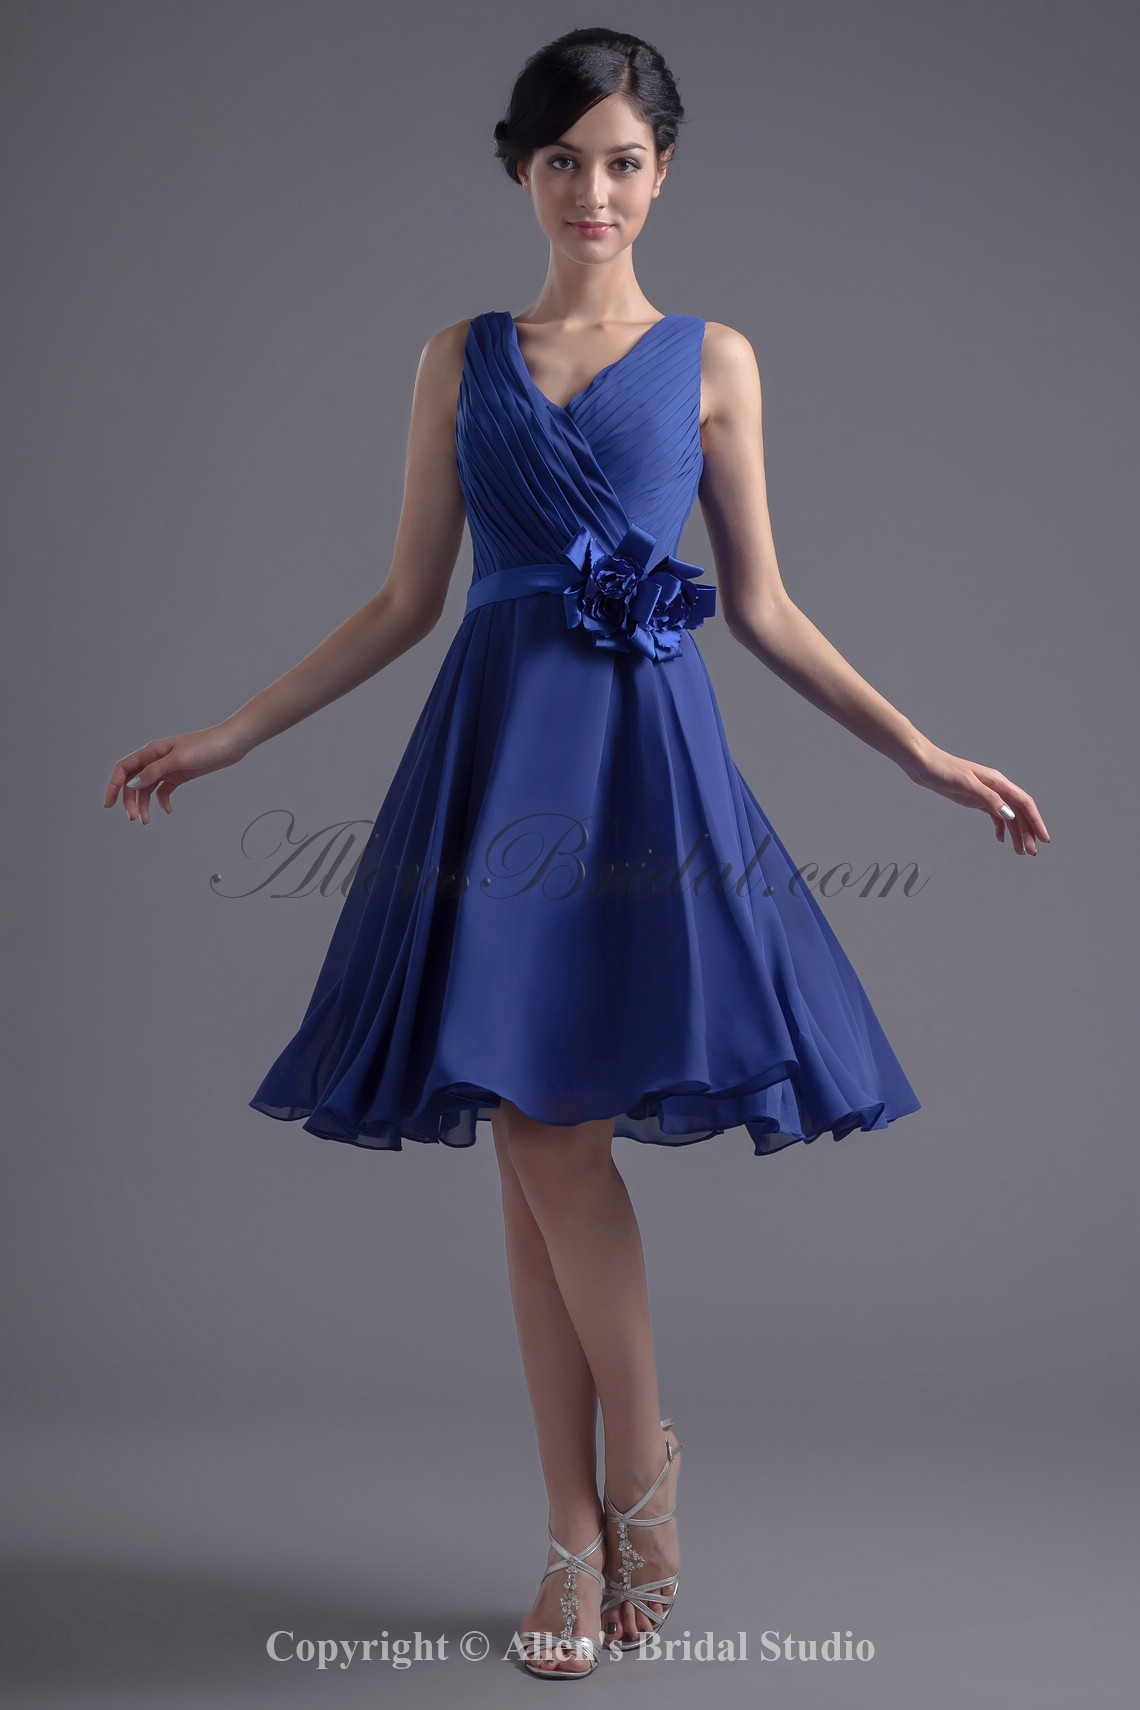 /7-8802/chiffon-v-neckline-a-line-knee-length-hand-made-flowers-cocktail-dress.jpg